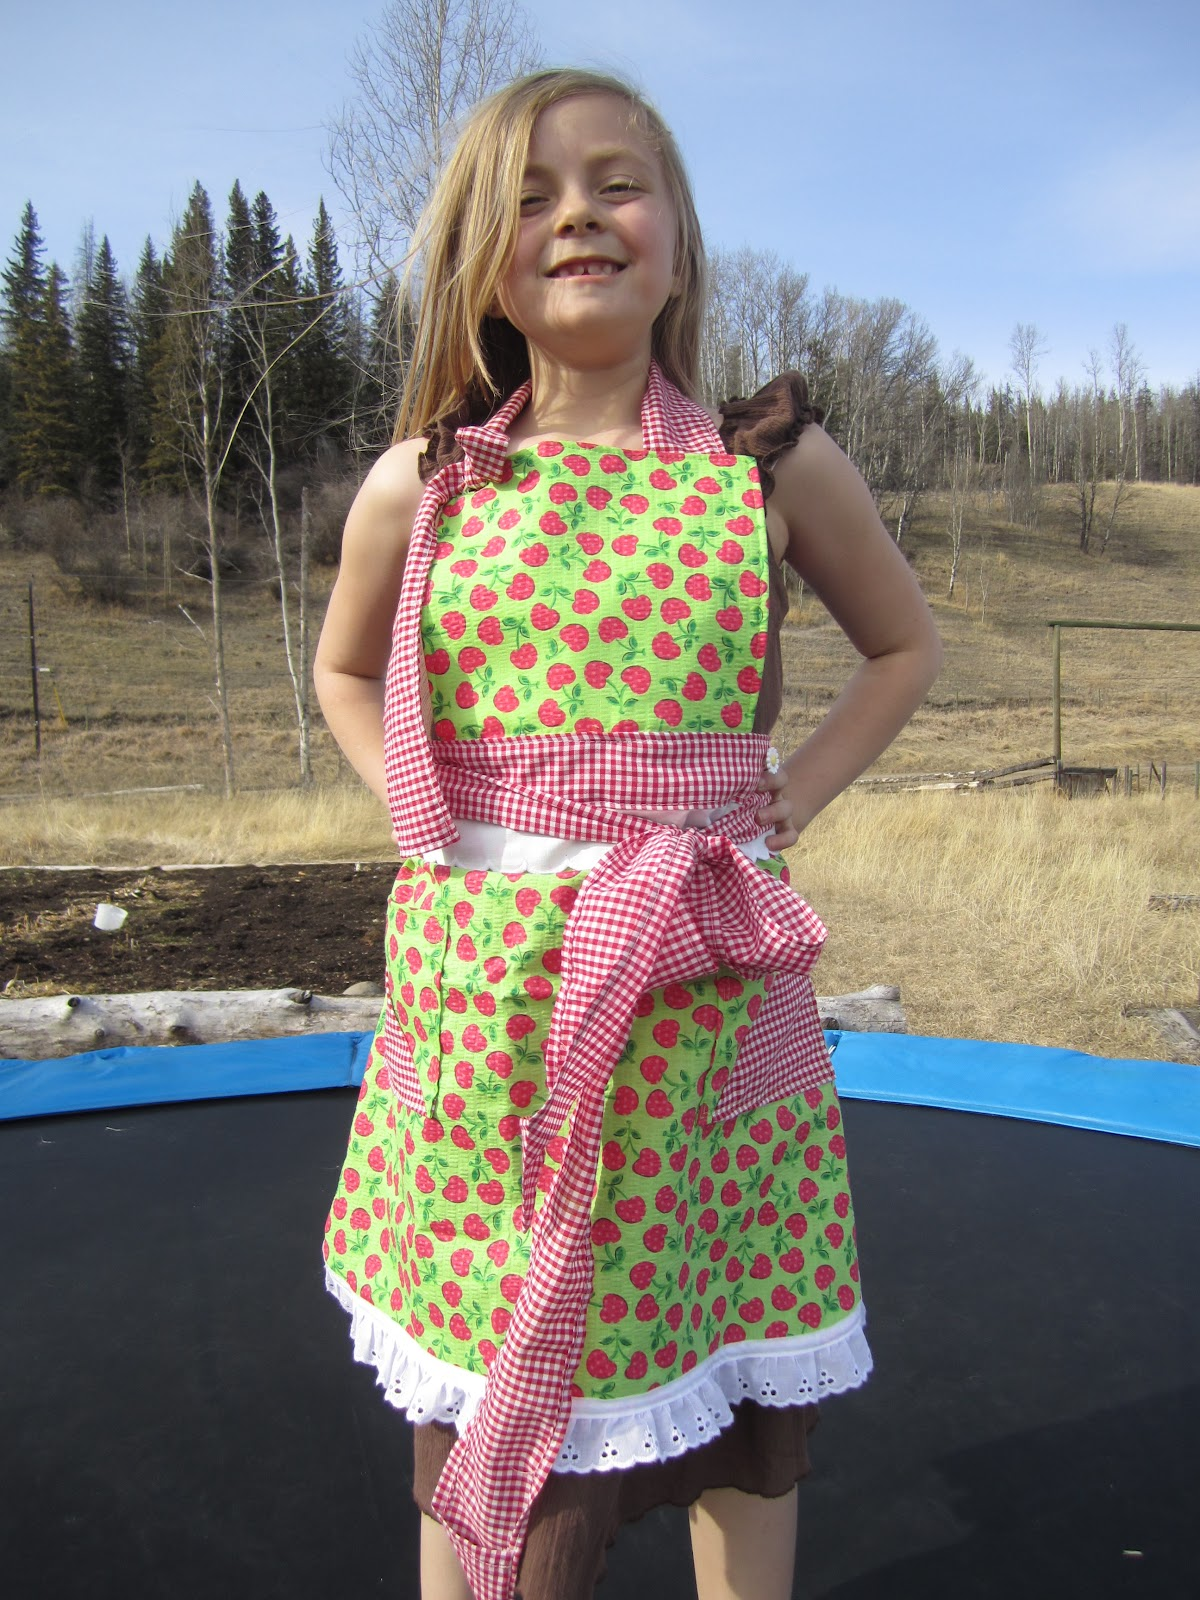 Gingham 'n' Cherry's Little Girls Apron